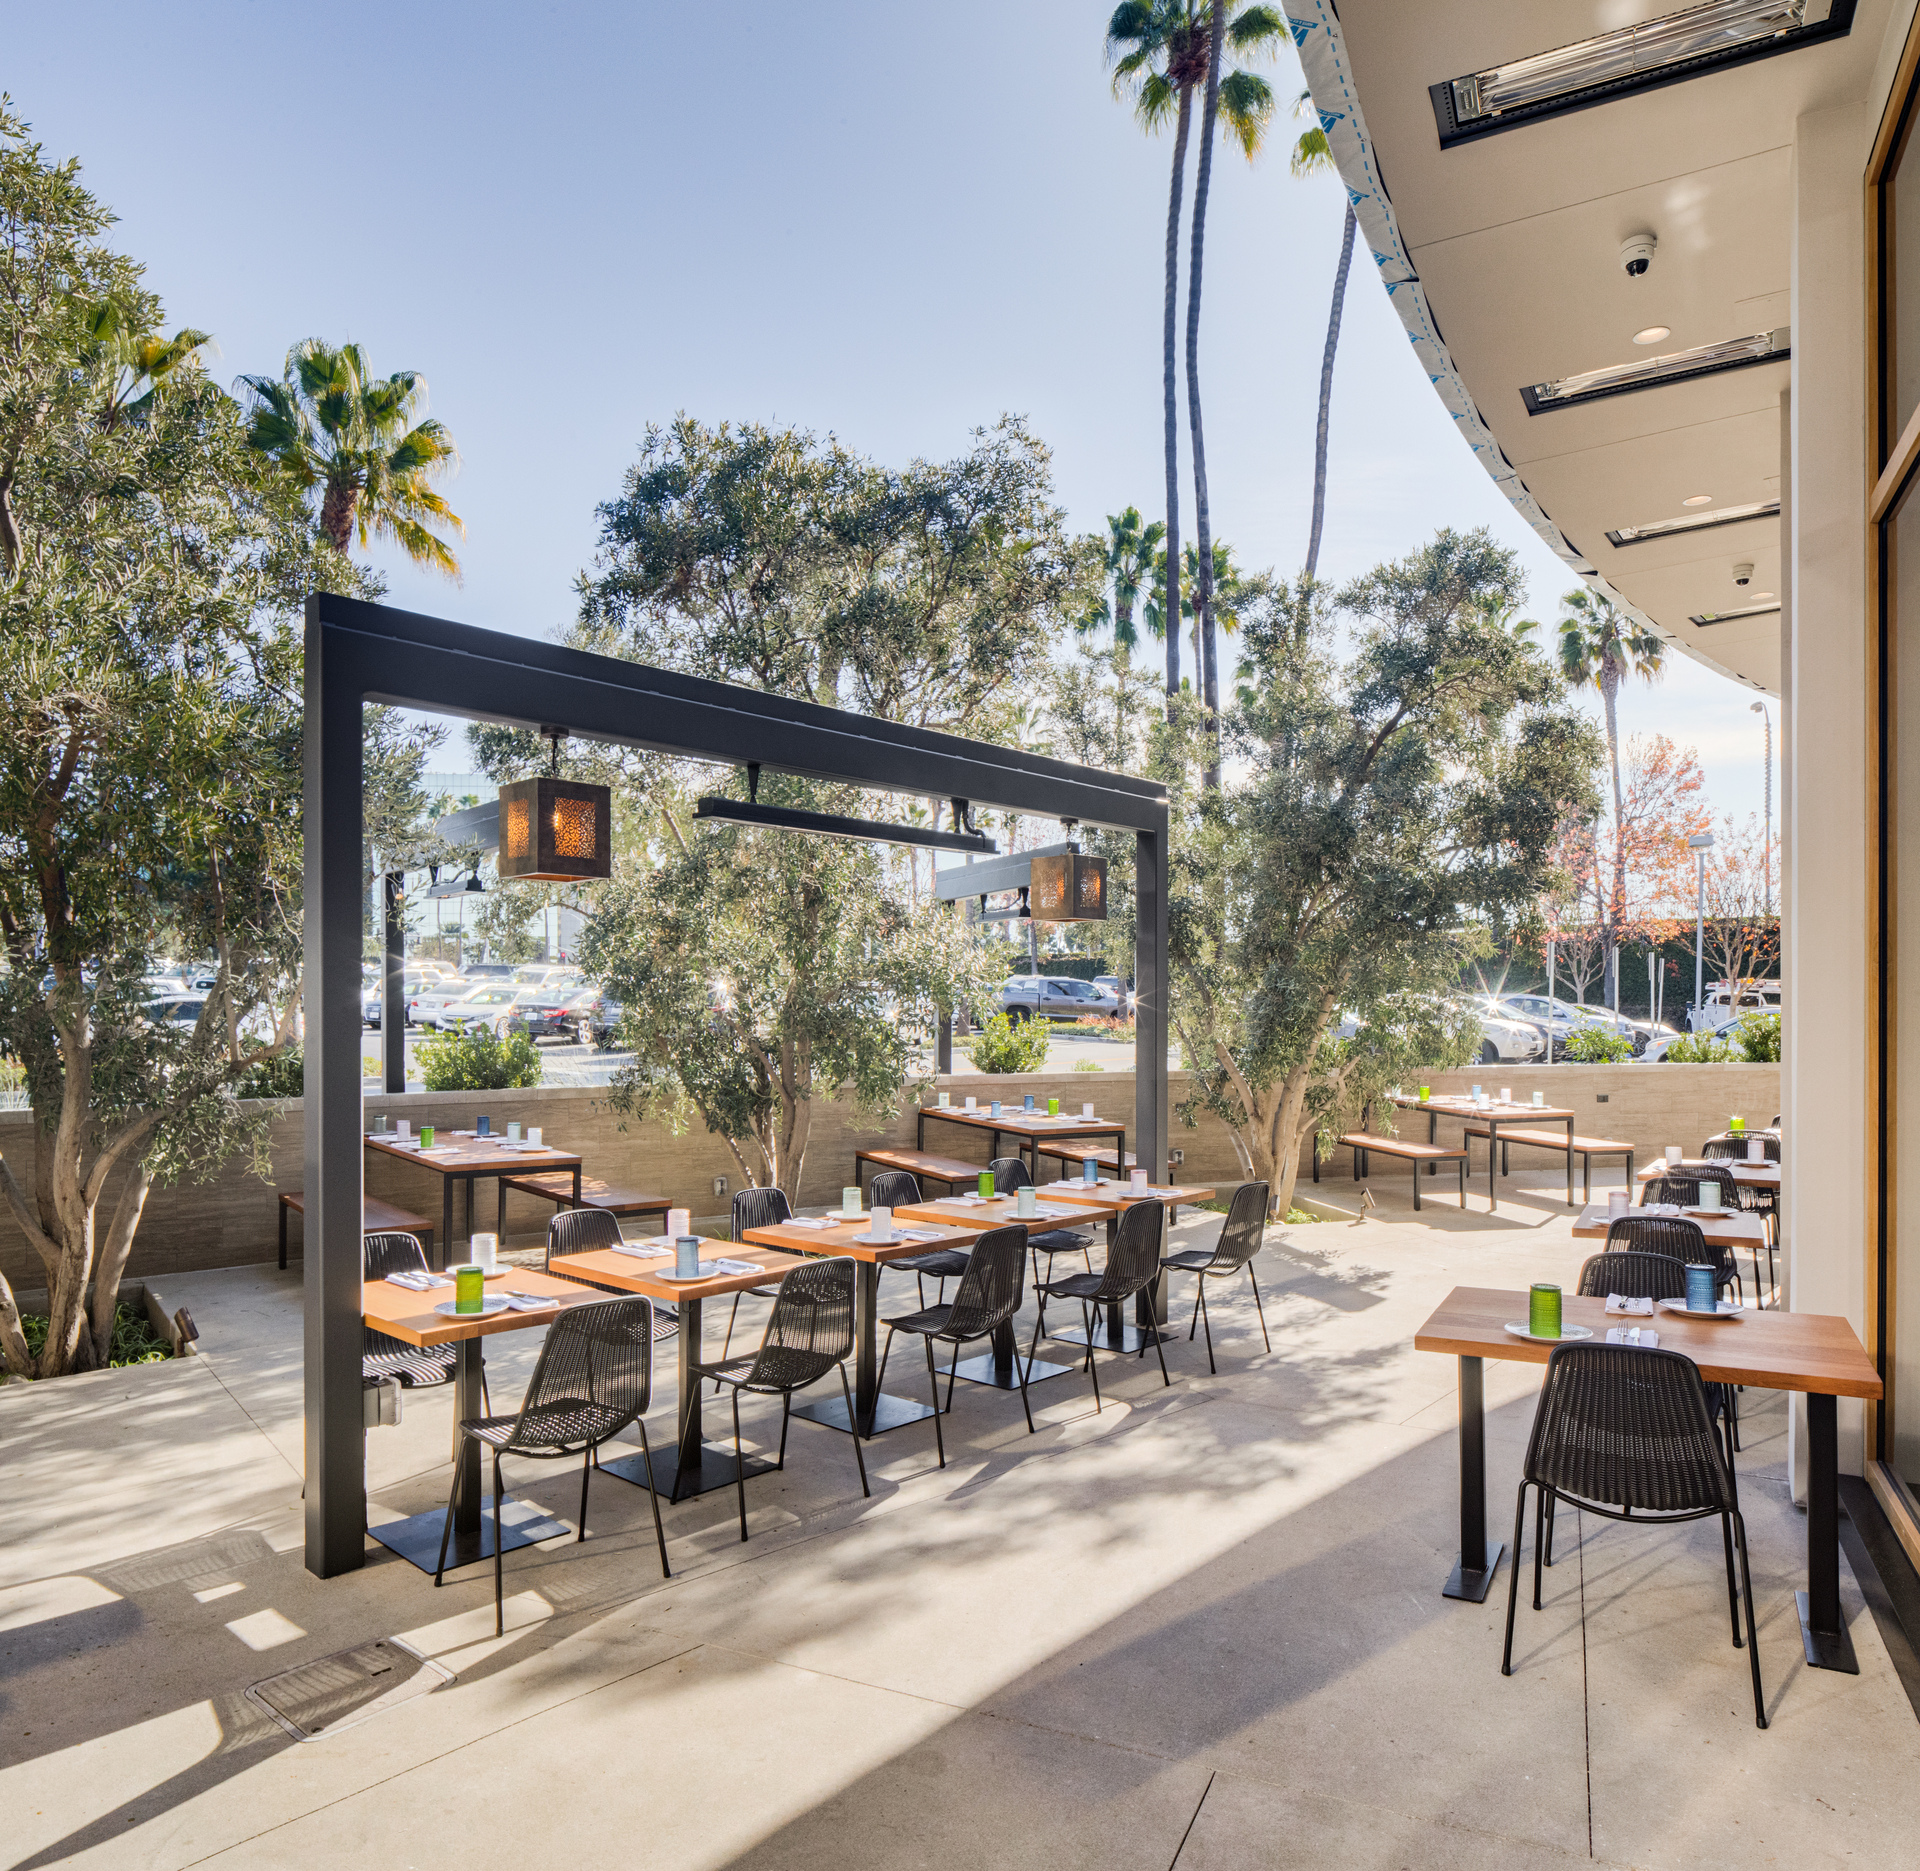 Comfortable outdoor dining spaces are achievable with the right equipment. Our premium infrared outdoor heaters are the perfect choice for design and functionality.